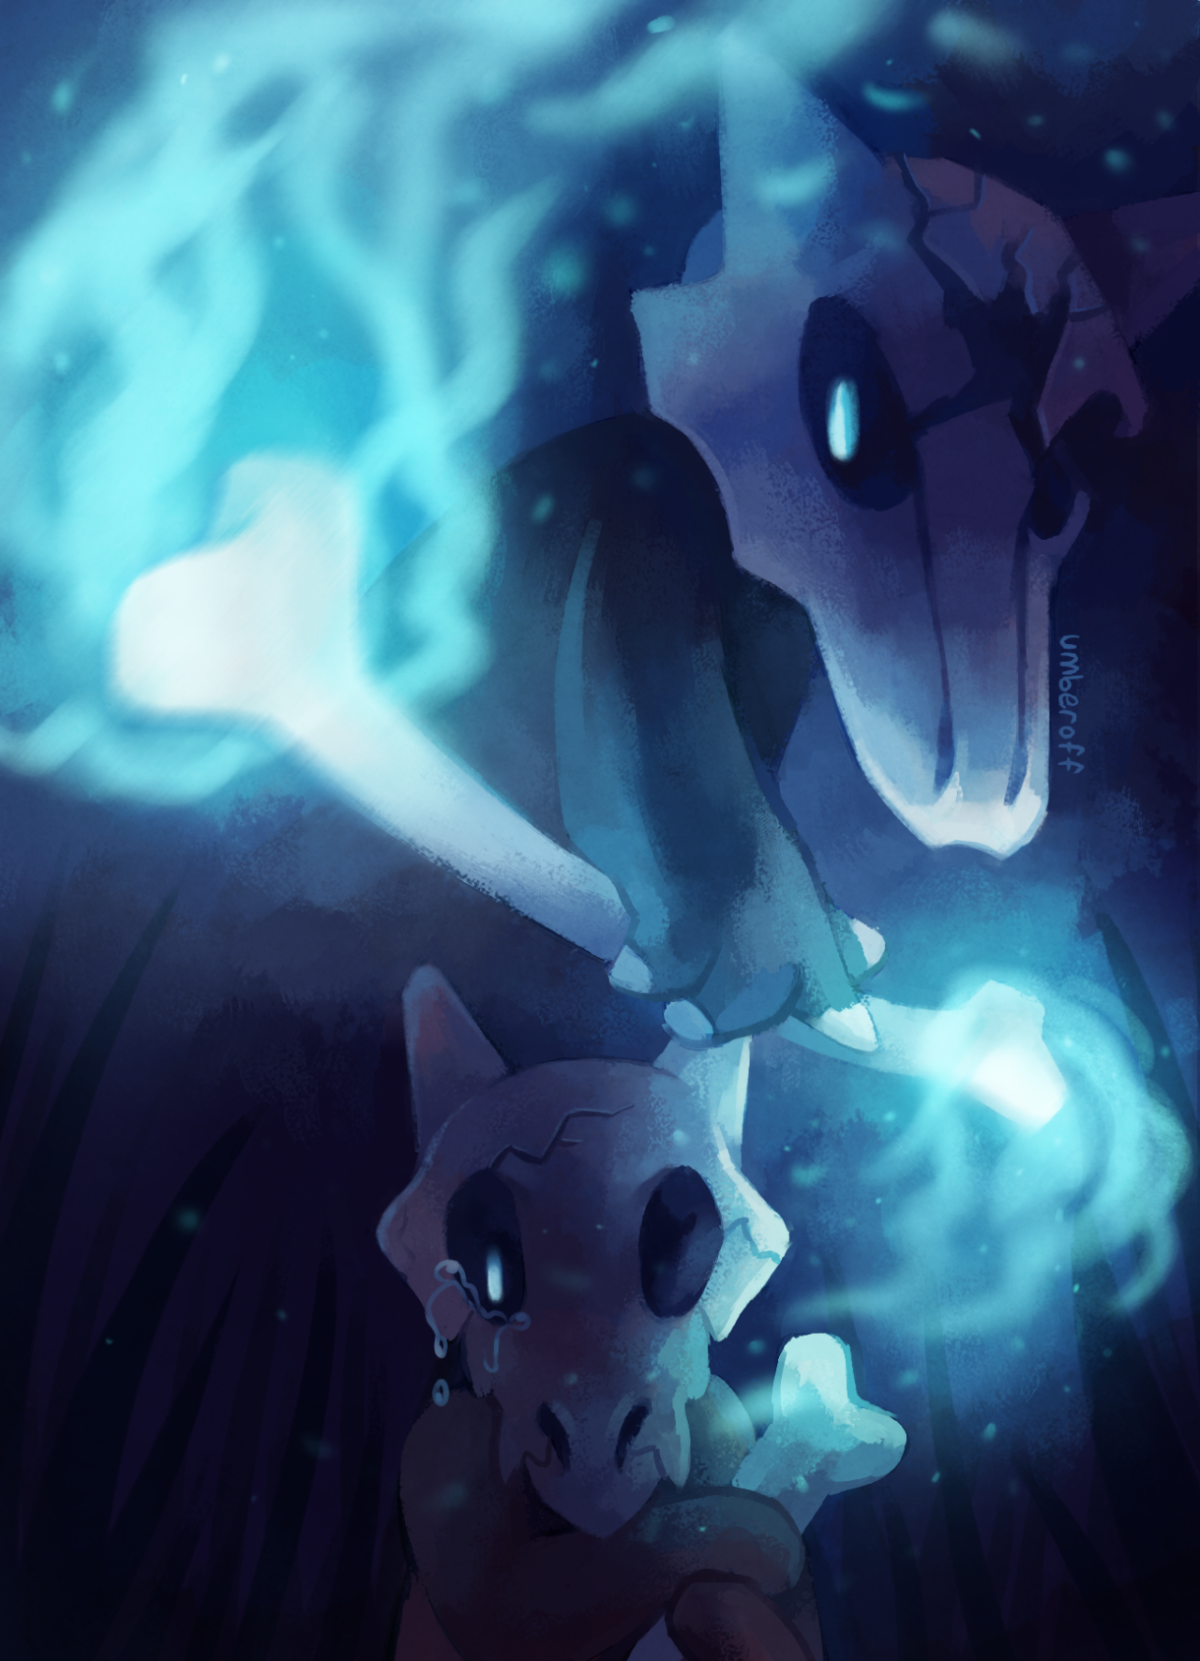 Marowak-Cubone-wallpaper-wp4006807 – live wallpaper HD Desktop …